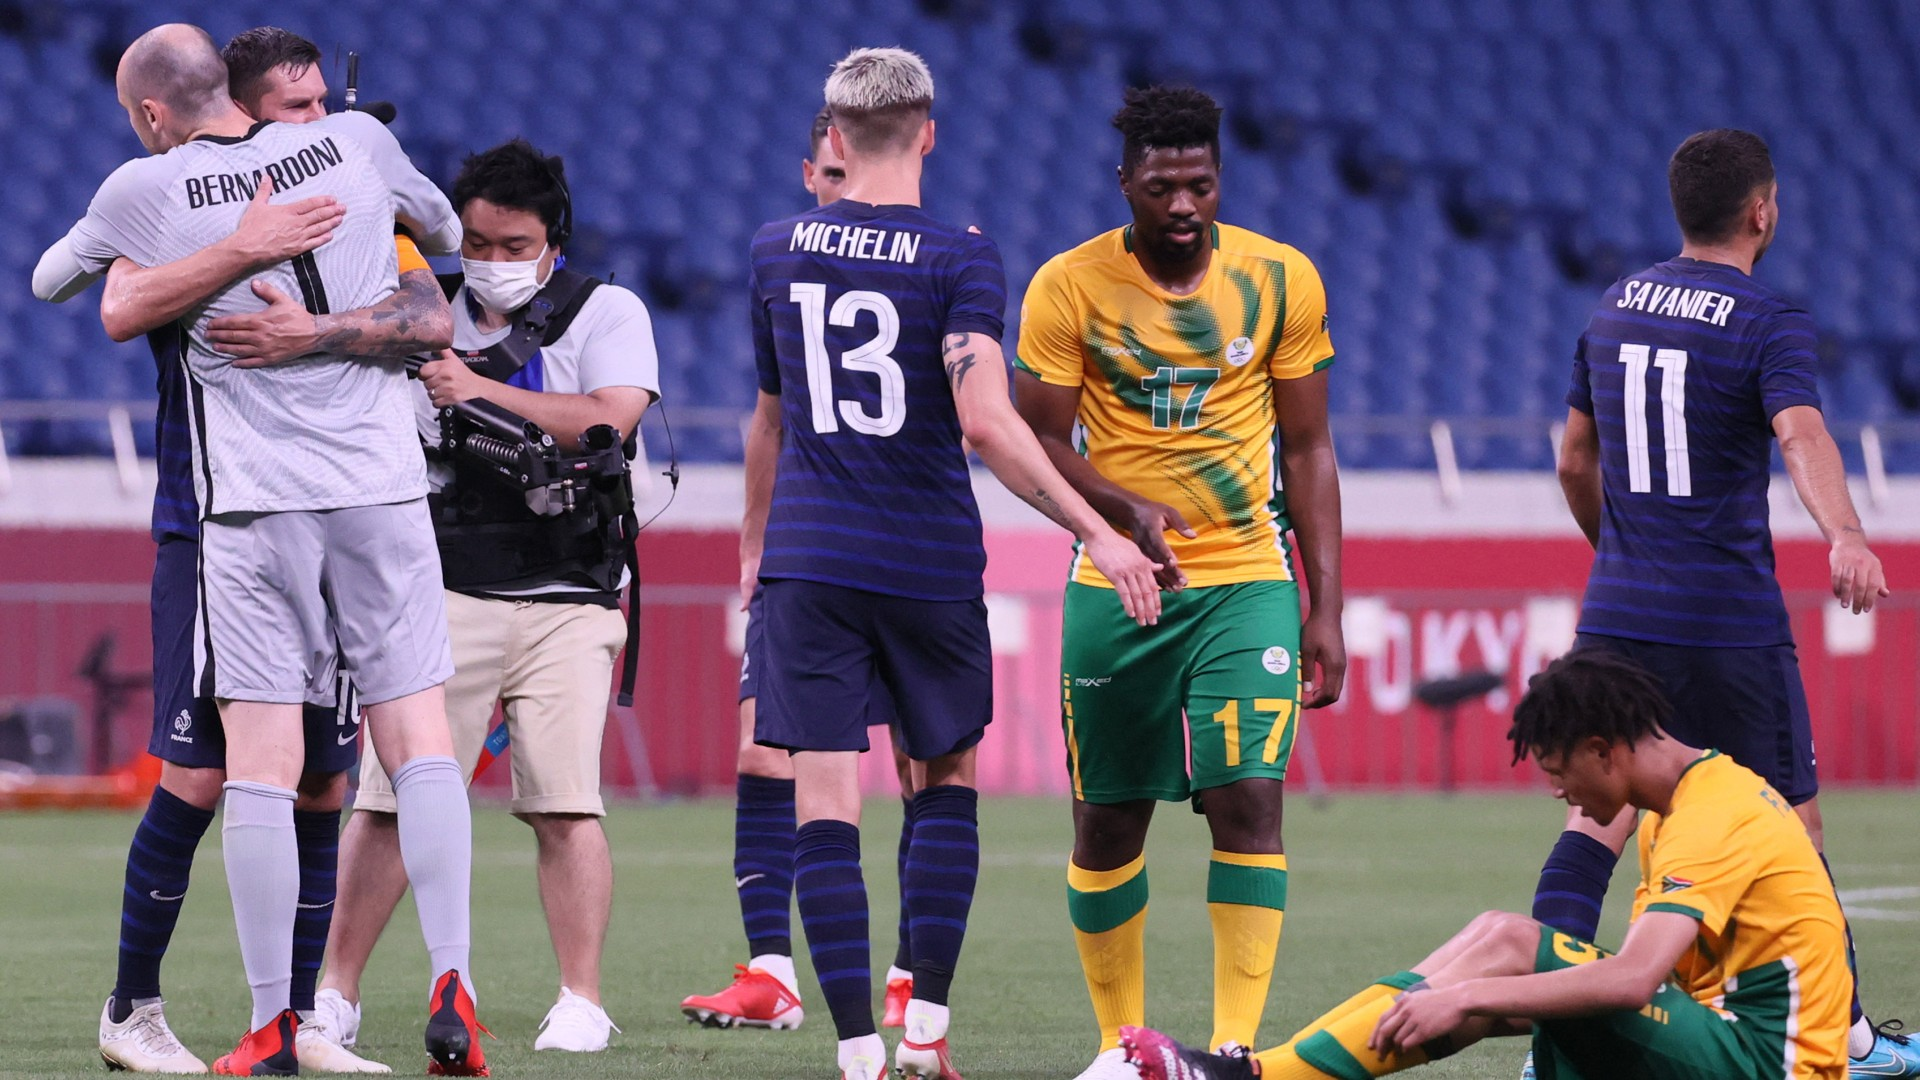 Olympics football: Poor substitutions and other talking points from South Africa's loss to France